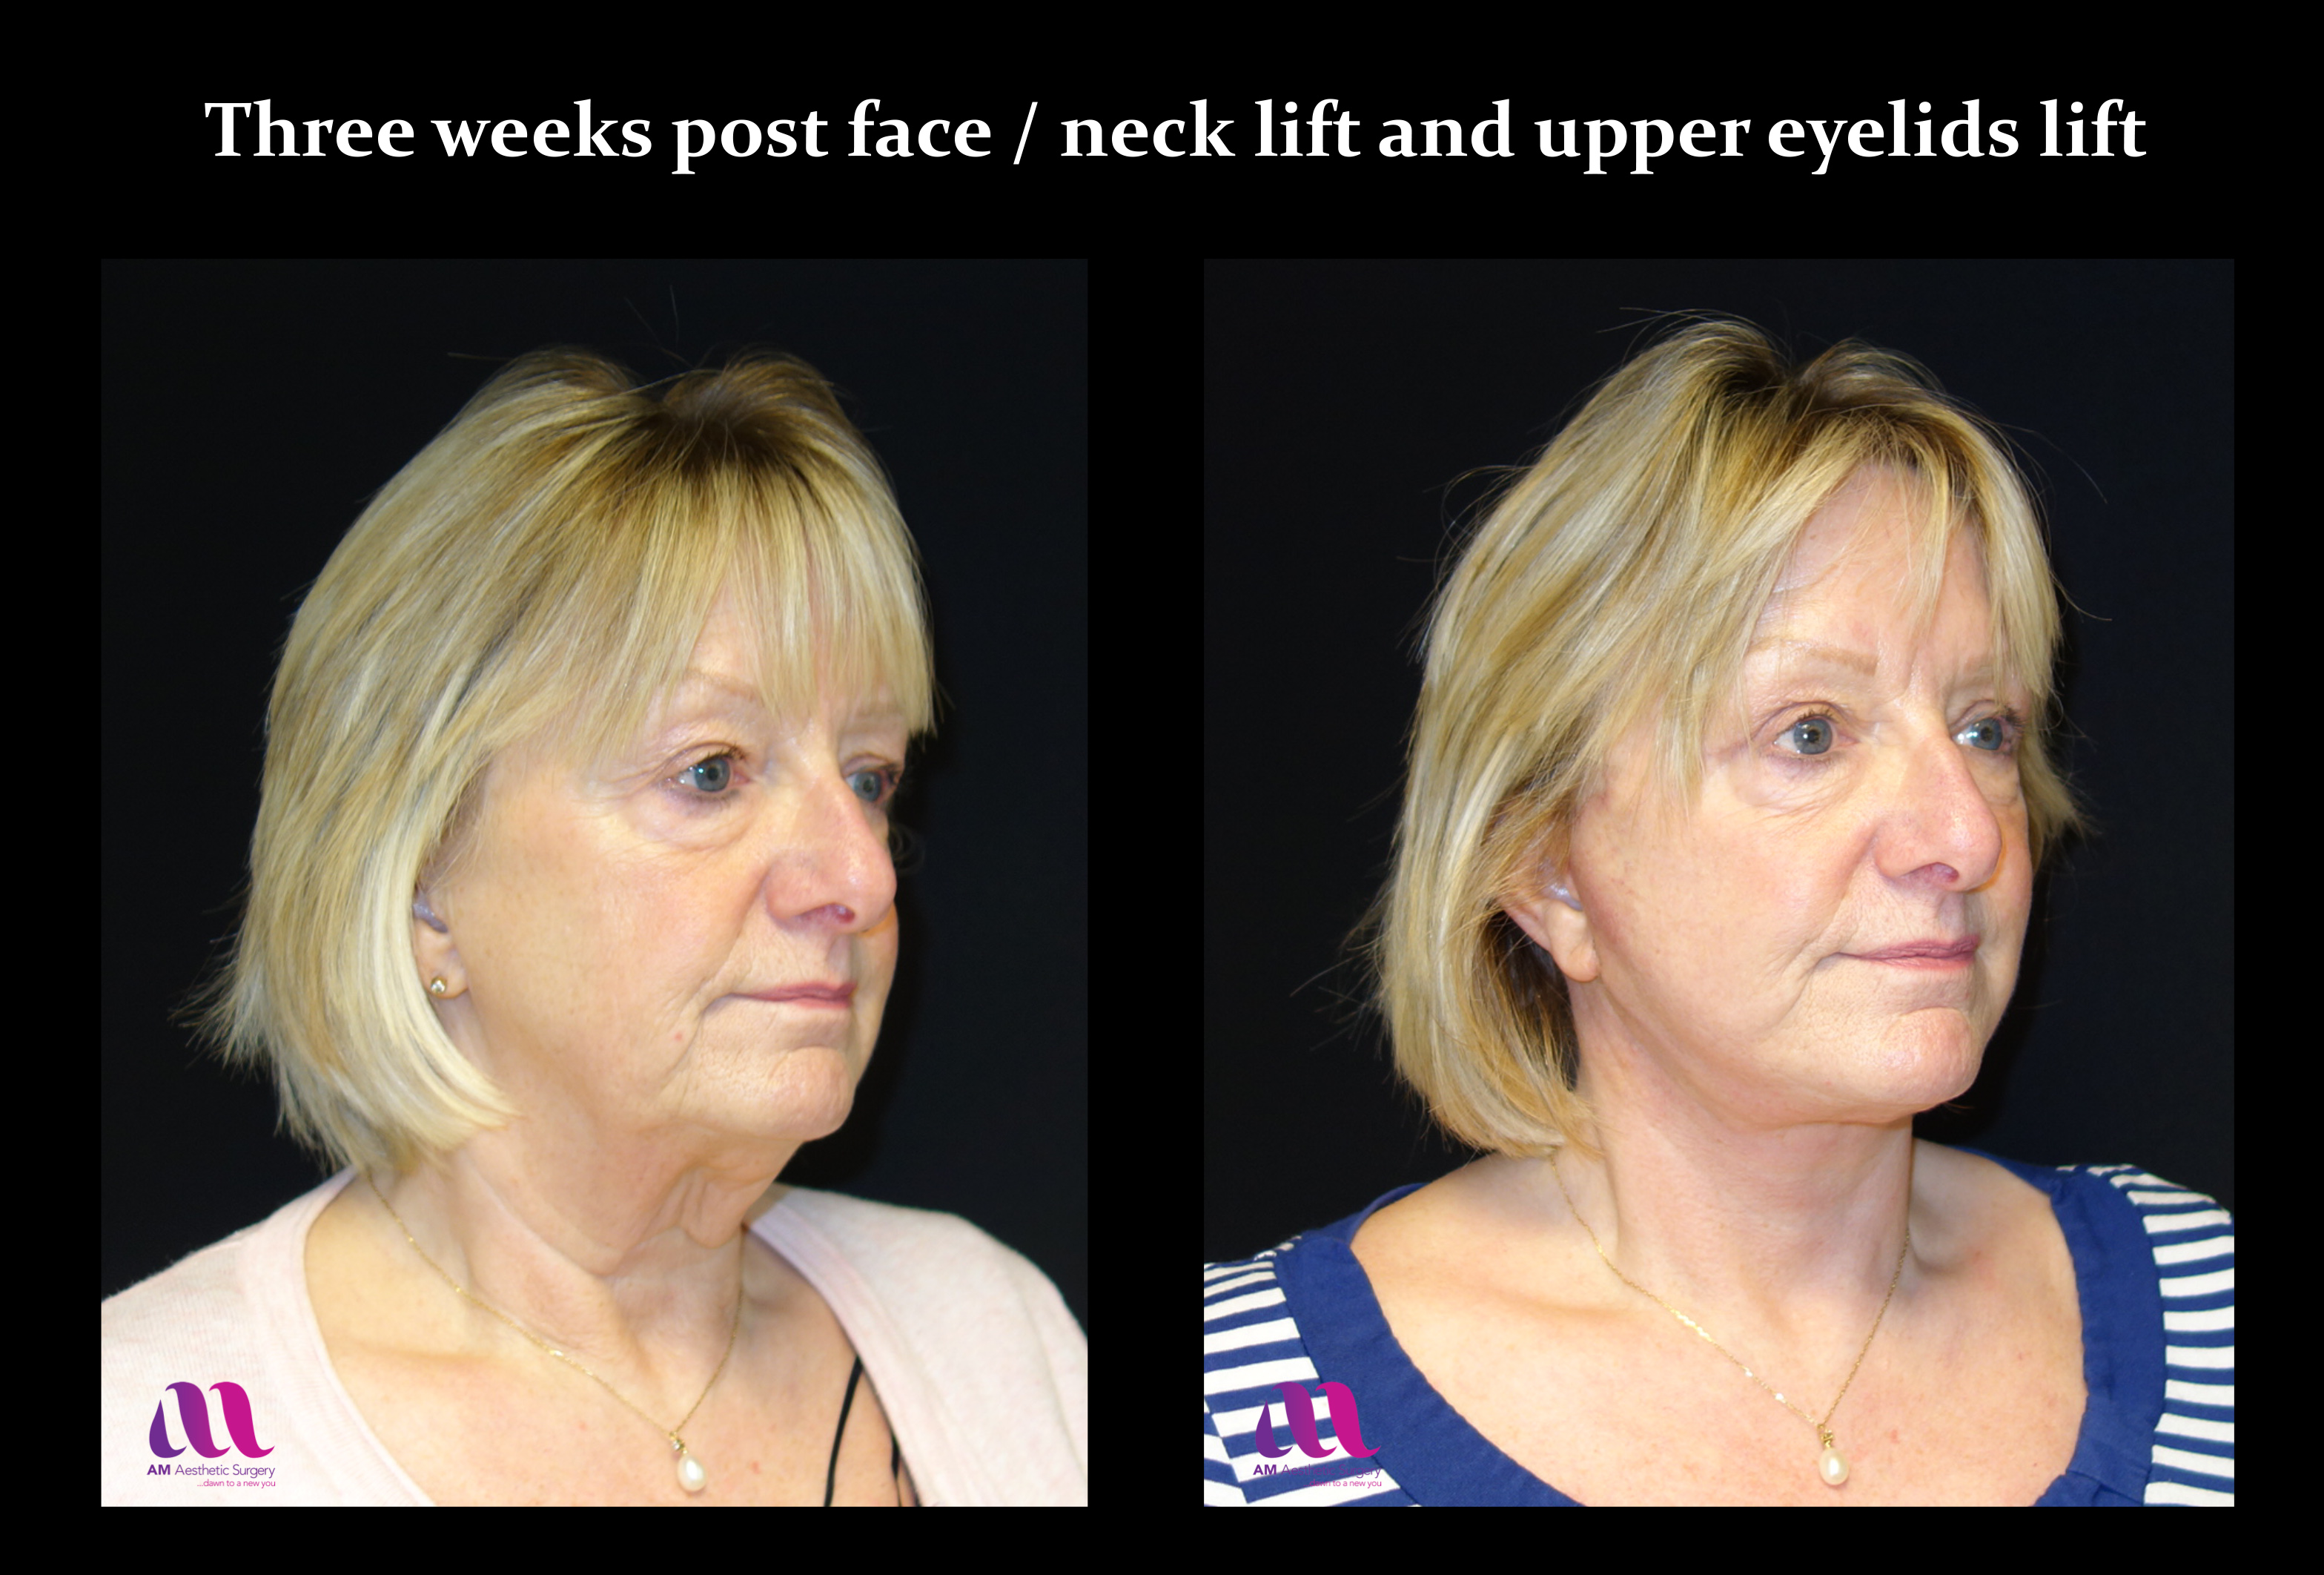 Face Lift +Upp Eyelids12f